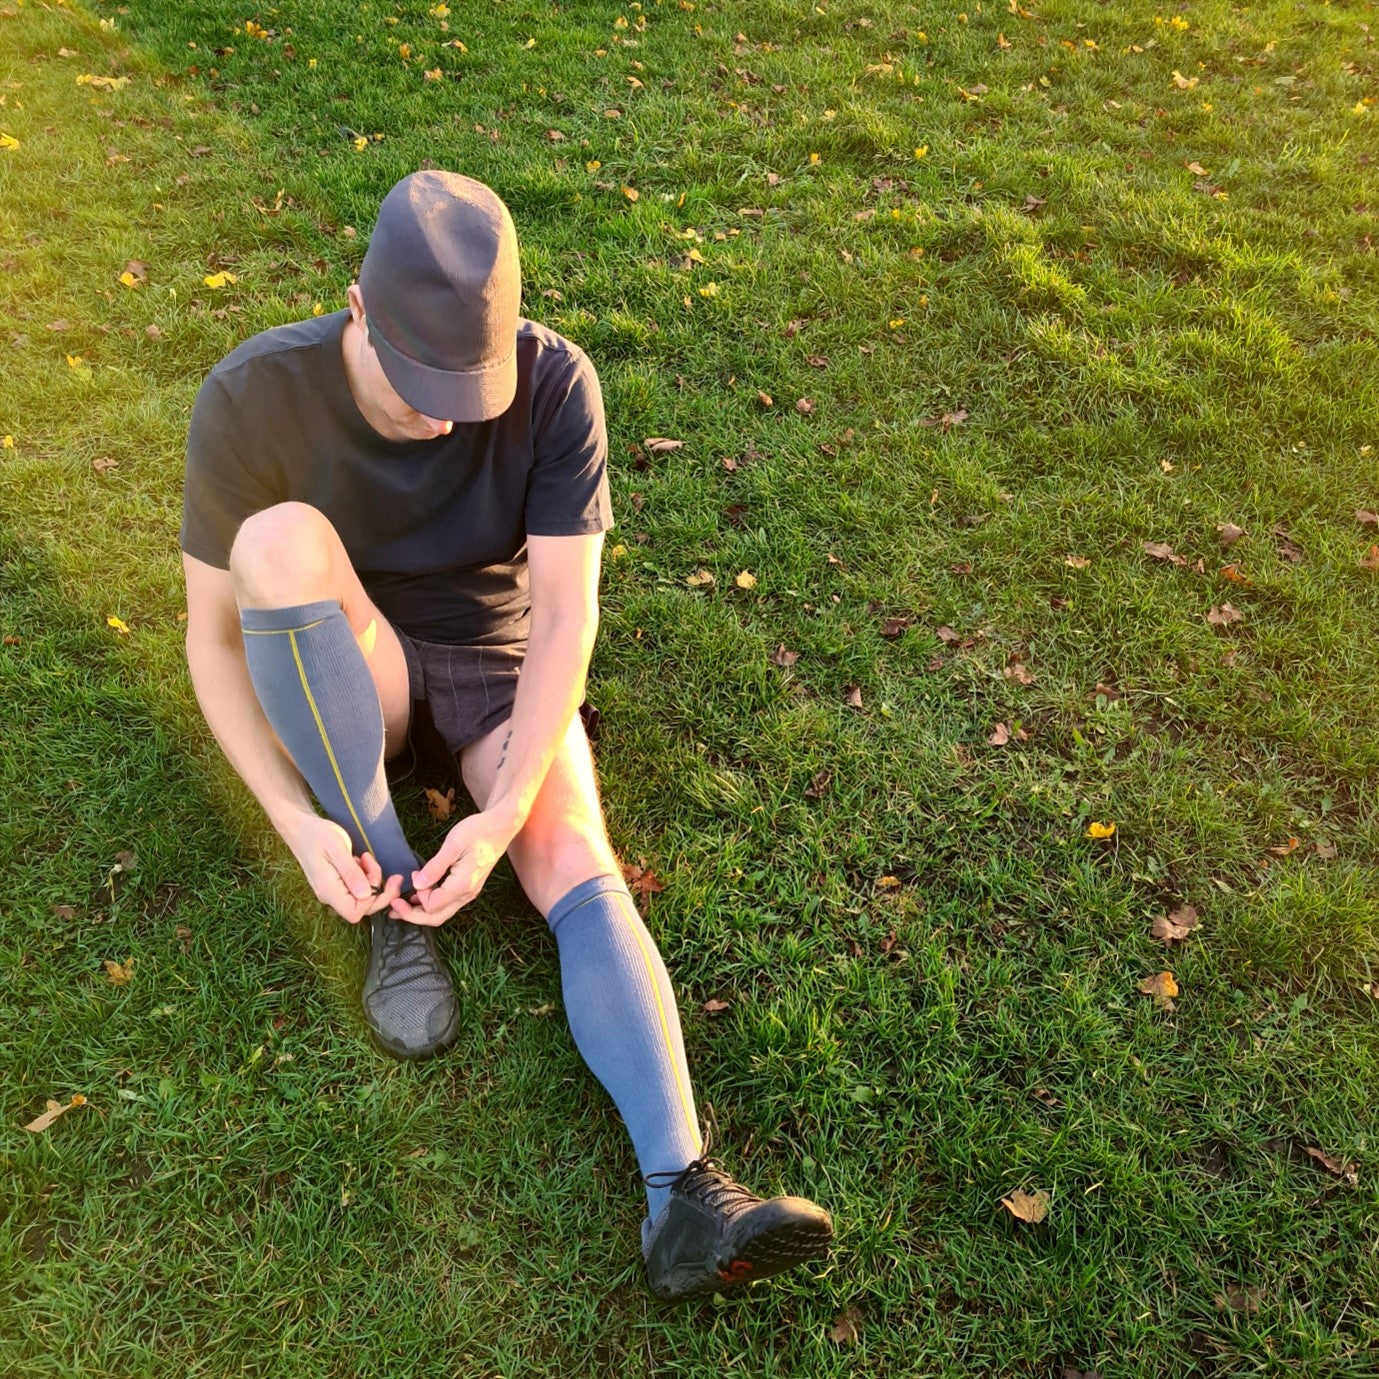 Man Wearing Hemp Compression Socks Tying Shoe Lace Sitting on the Grass, Hemp Sock Color Ensign Blue, Skin Friendly Eco Friendly Compression Wear, Antibacterial Durable Socks, Sustainable Active Wear | SHIN JARDBO